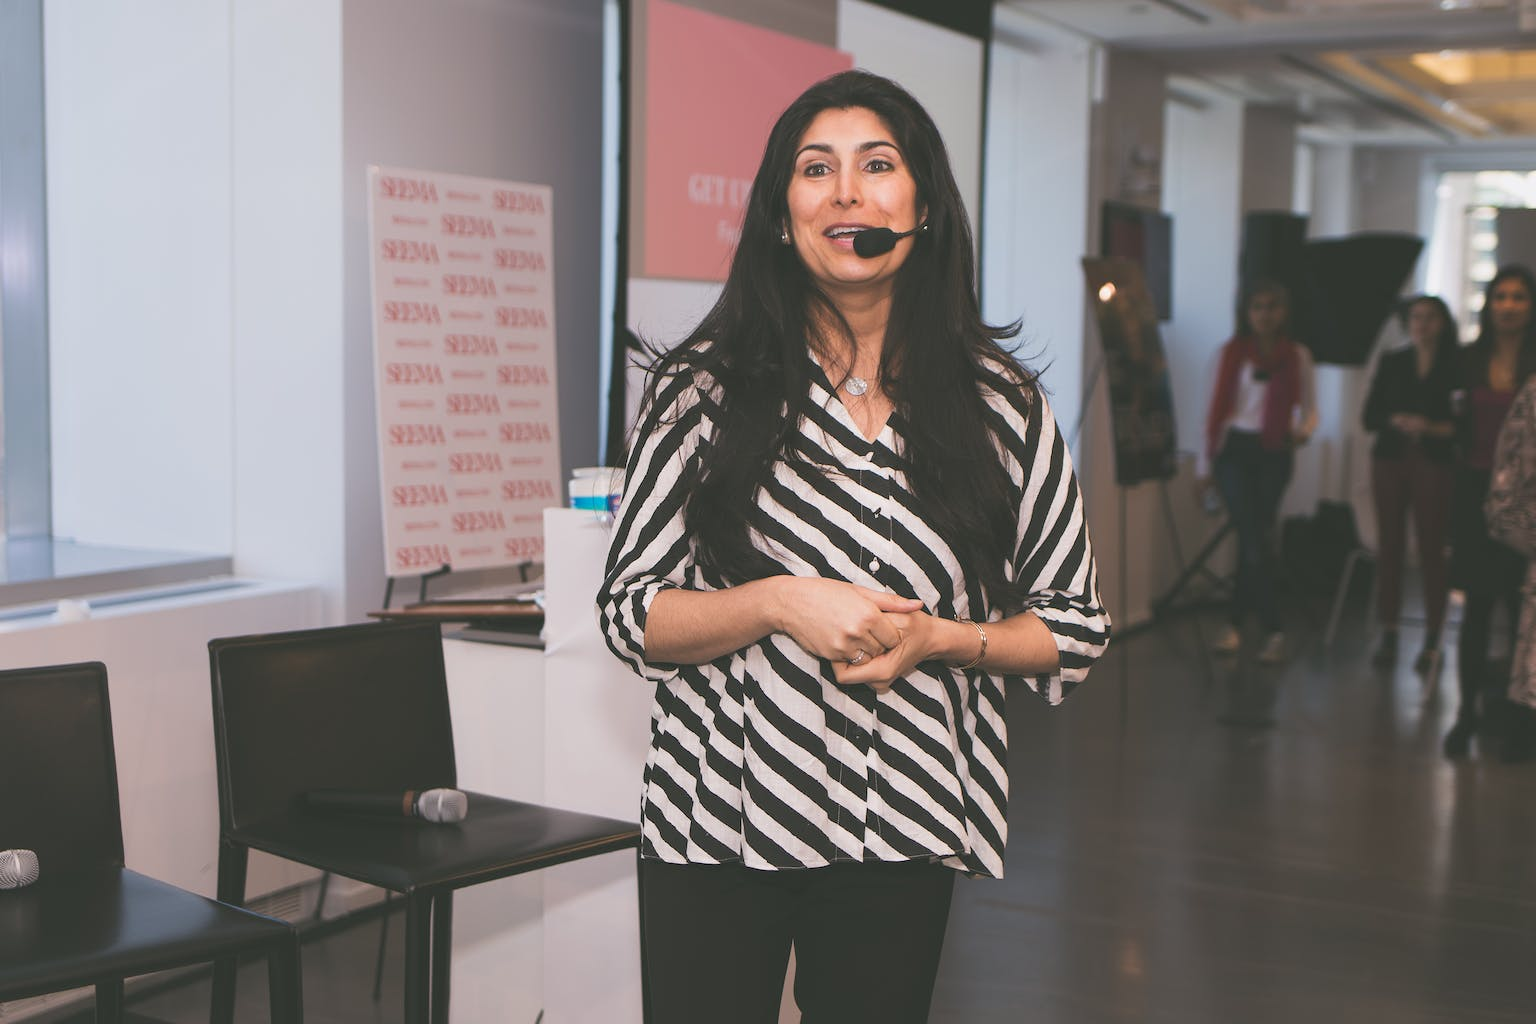 seema.com, seema newsletter, seema network, seema for South Asian women entrepreneurs, seema summit 2020 speaker, South Asian women entrepreneurs, fitness women entrepreneurs, women entrepreneurs, Masala Bhangra, fitness bhangra, Sarina Jain